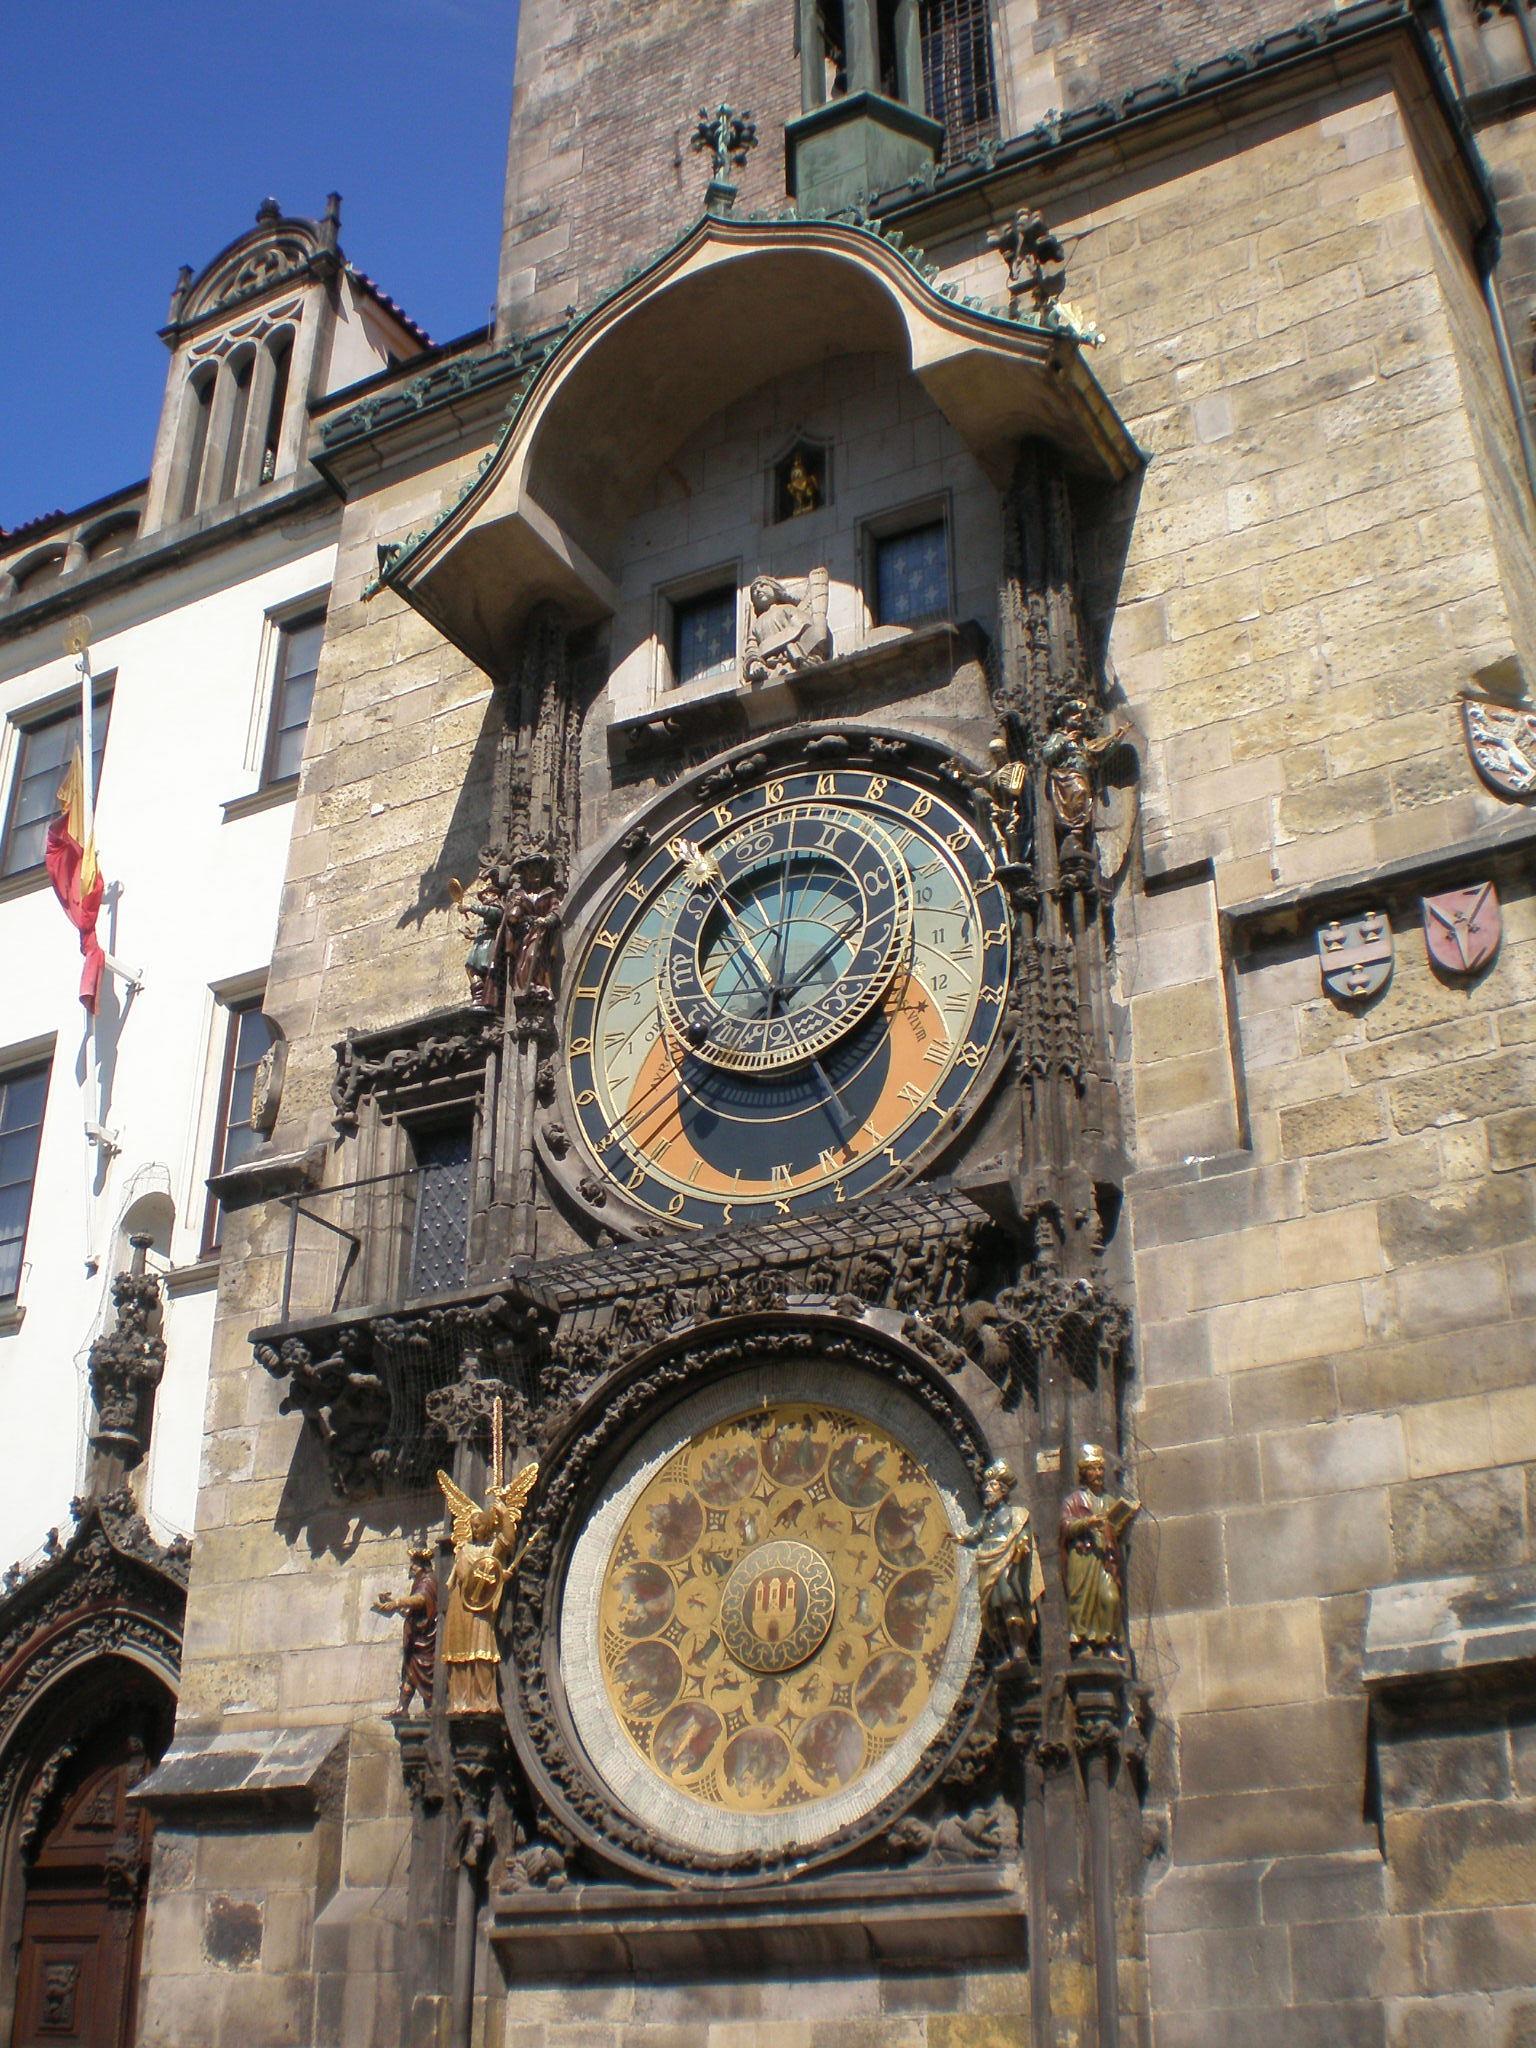 Fifteenth century Prague's astronomical clock: it is the oldest one still working and third-oldest astronomical clock in the world.